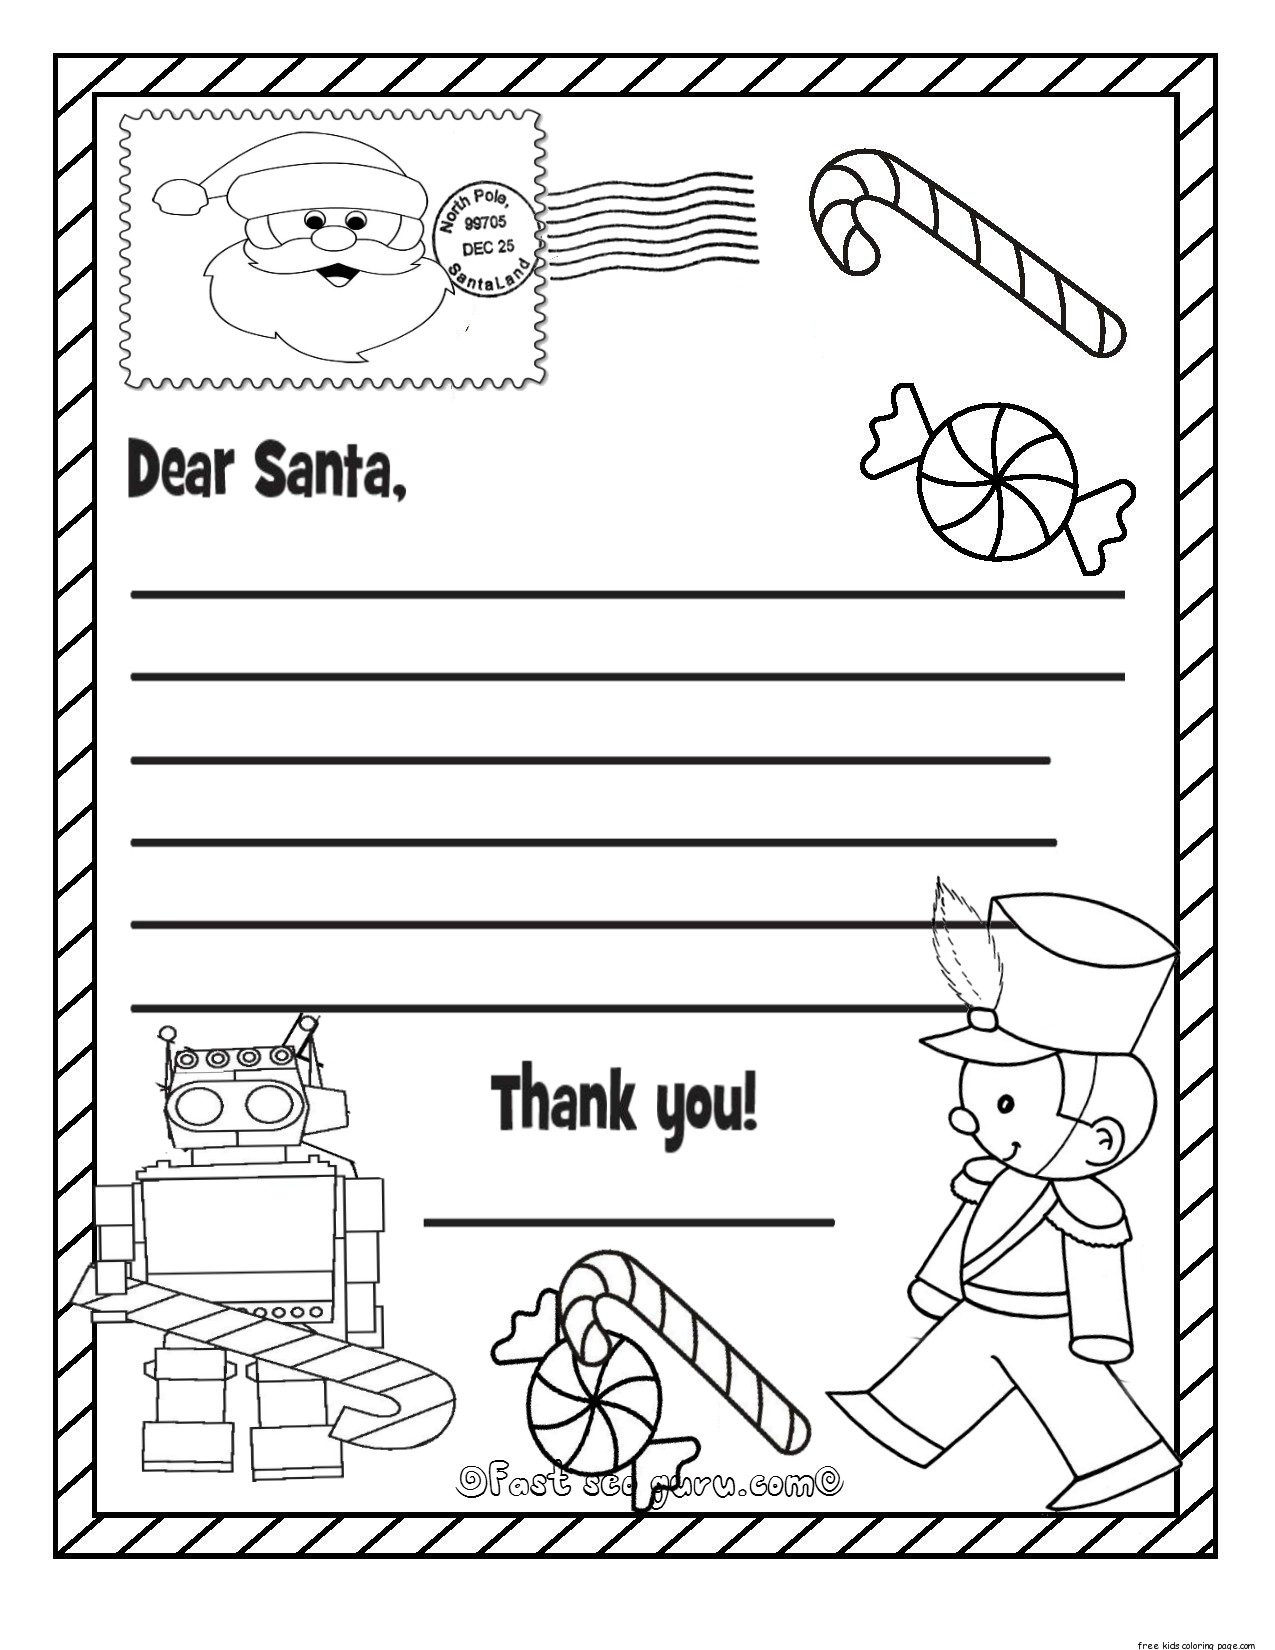 Kids Christmas Santa Claus Coloring Page Sheets With Printable Wish List To For KidsFree